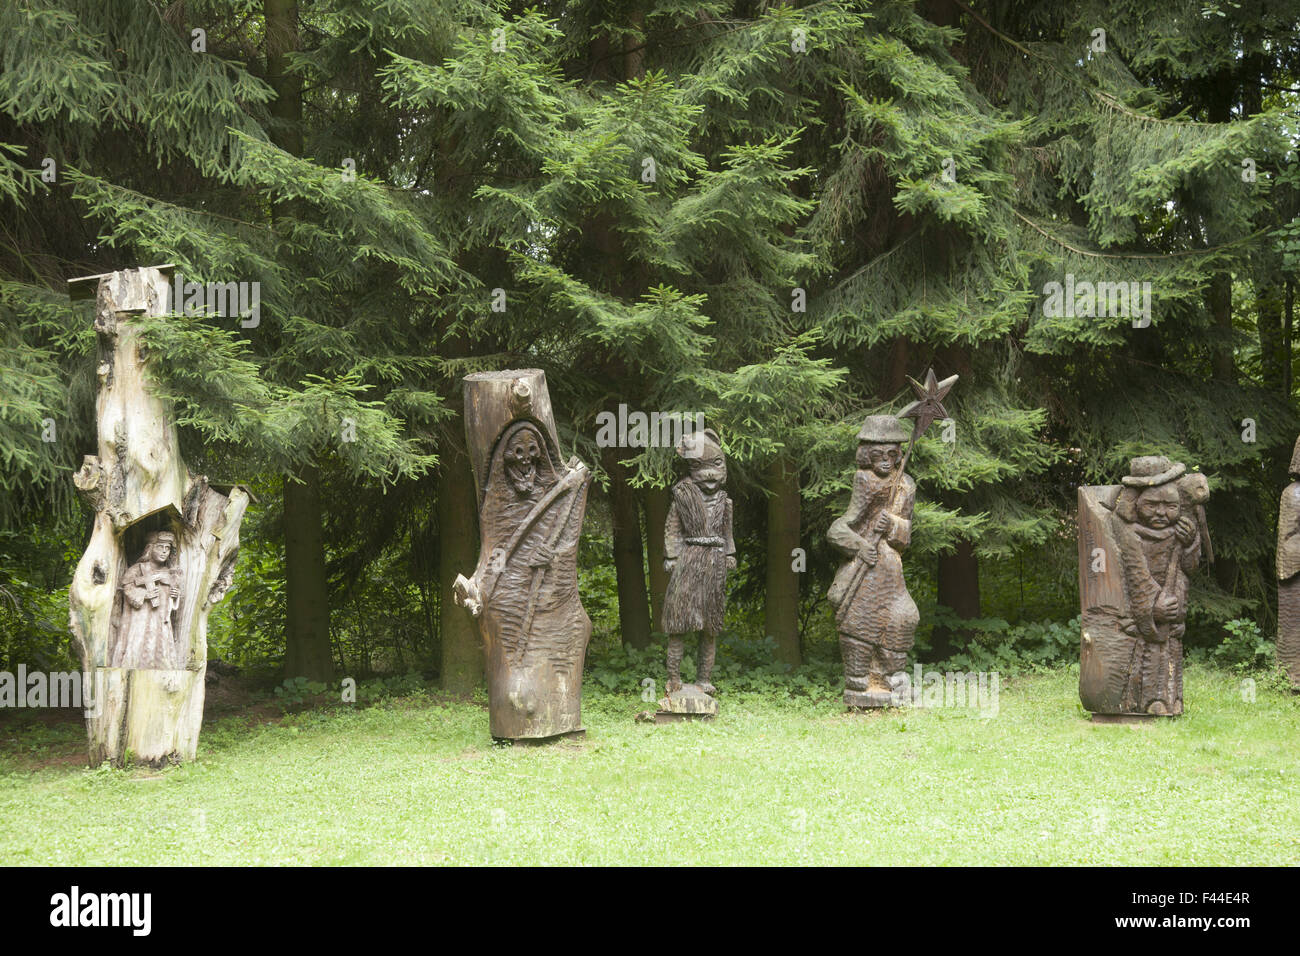 Folk art Wooden carvings from single logs on display at a park in Zielona Gora, Poland. - Stock Image